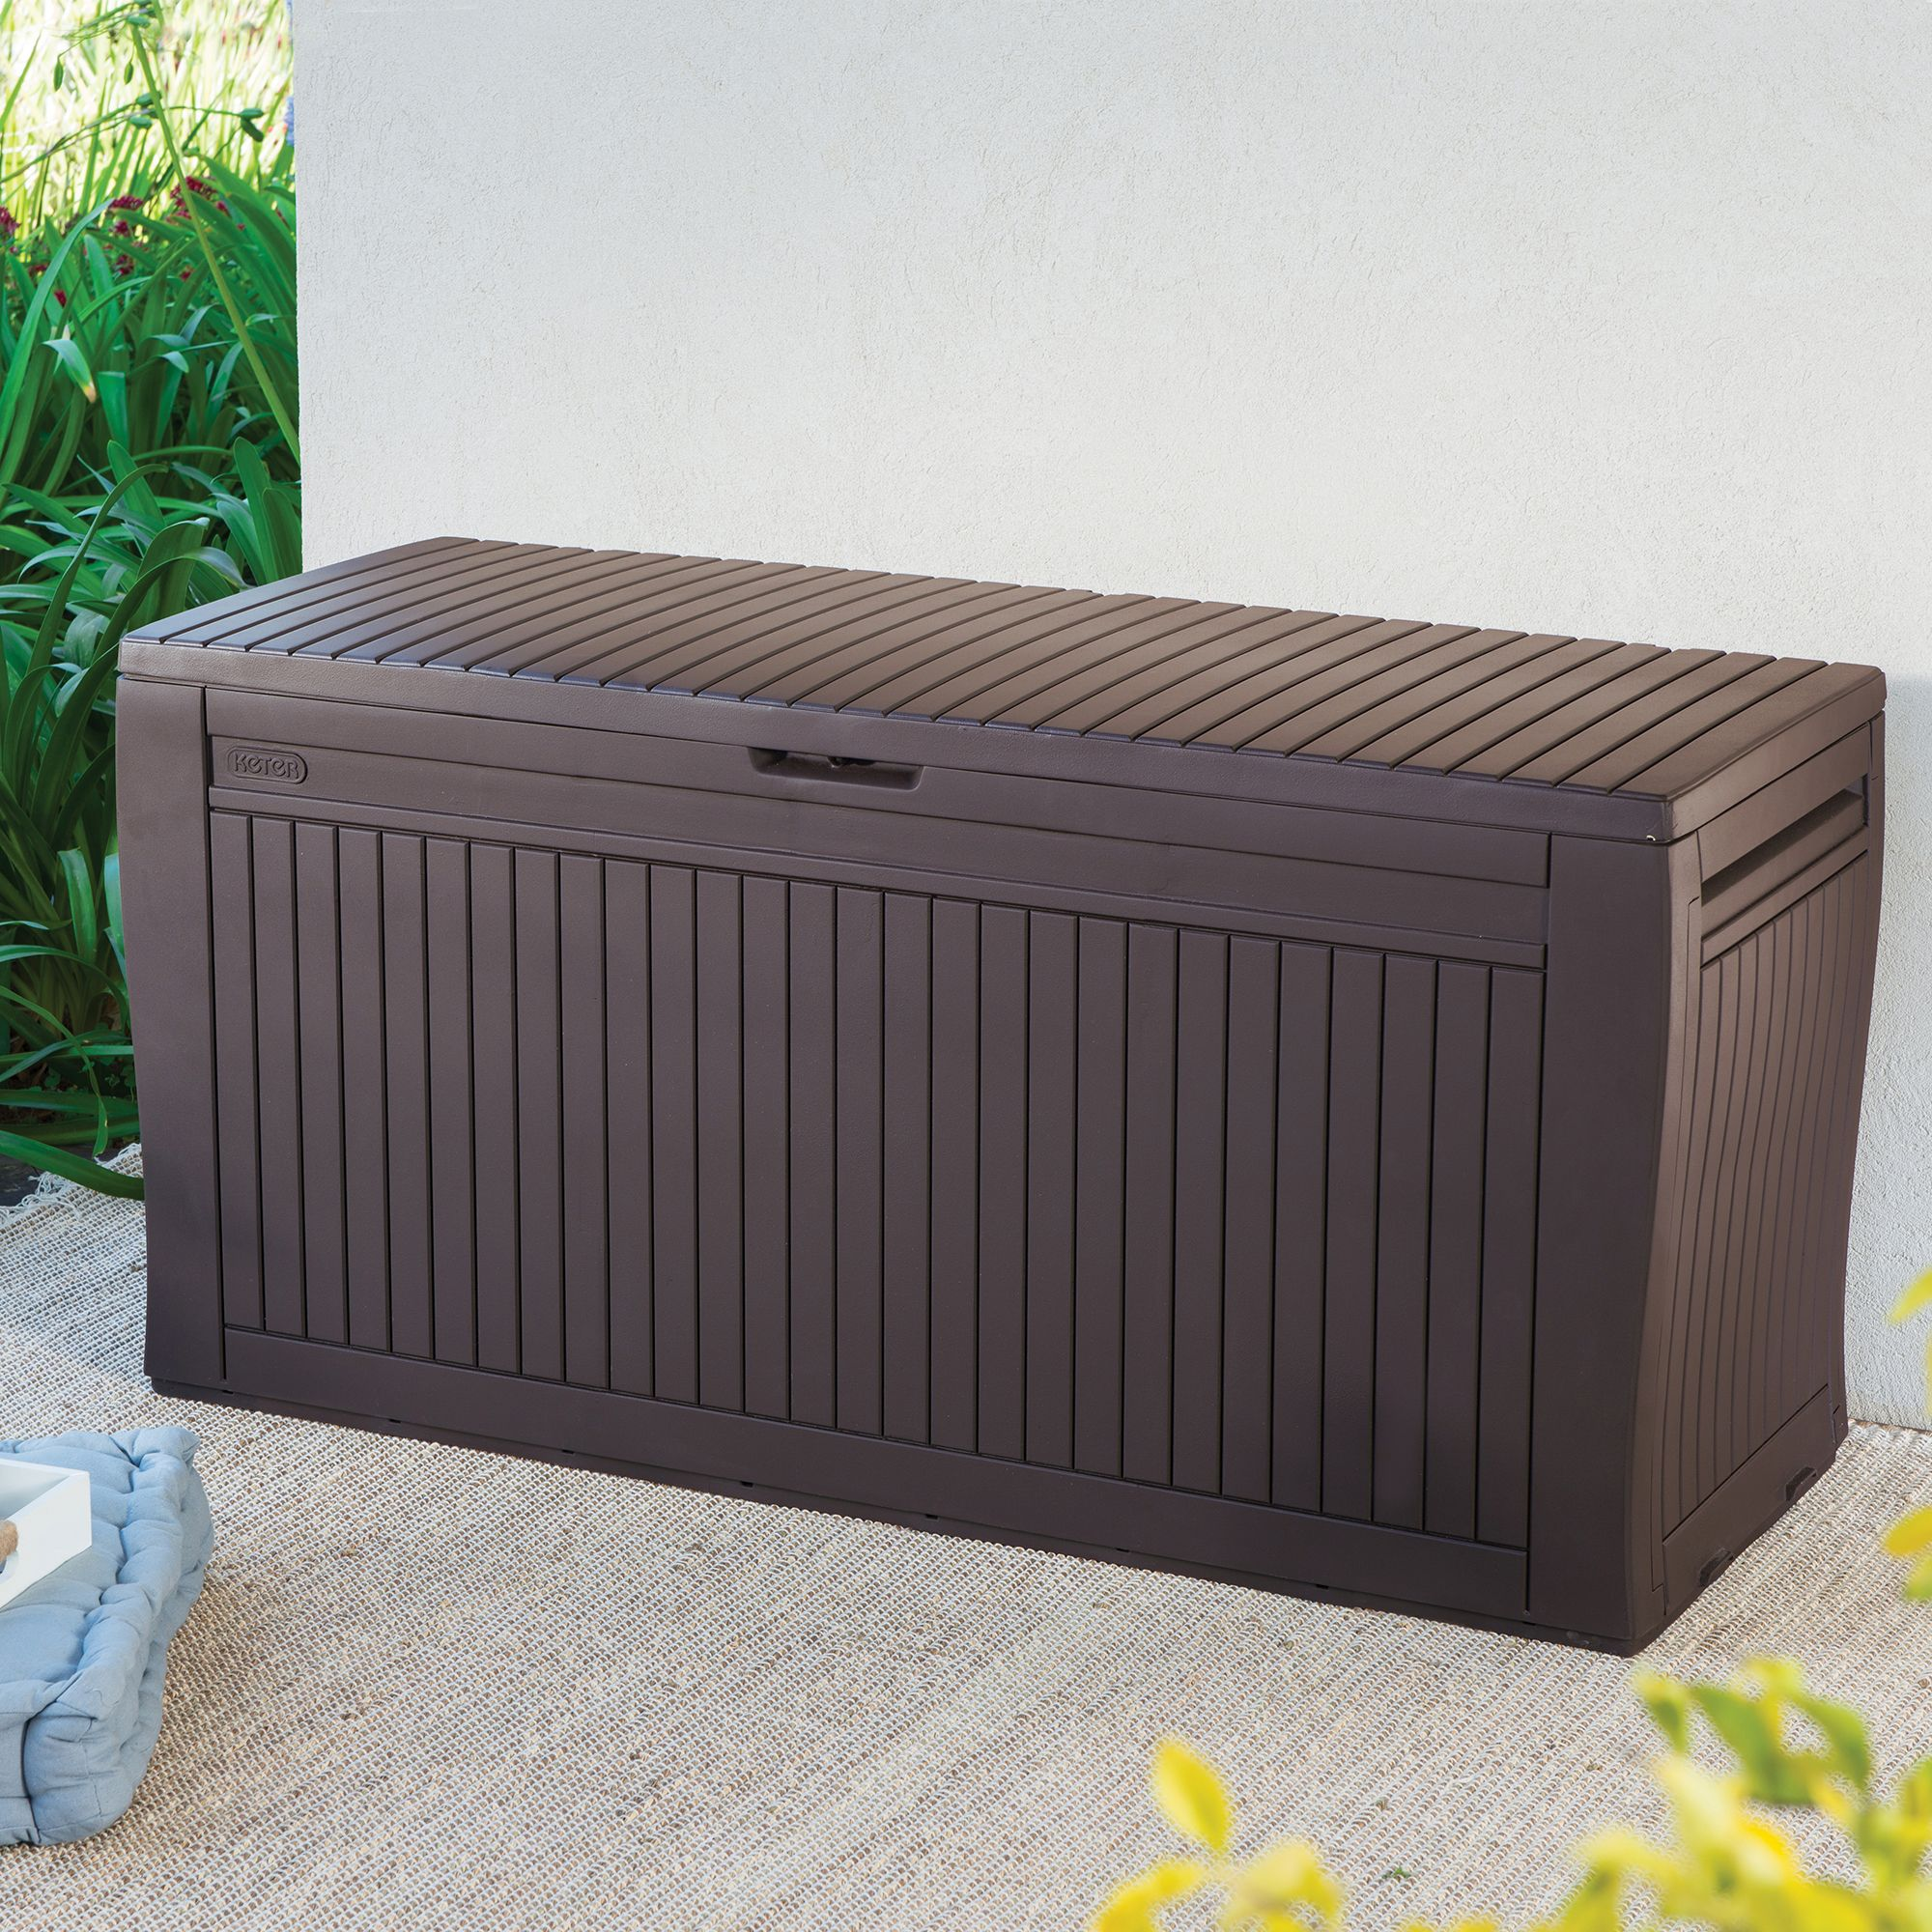 Keter Comfy Wood Effect Plastic Garden Storage Box Departments